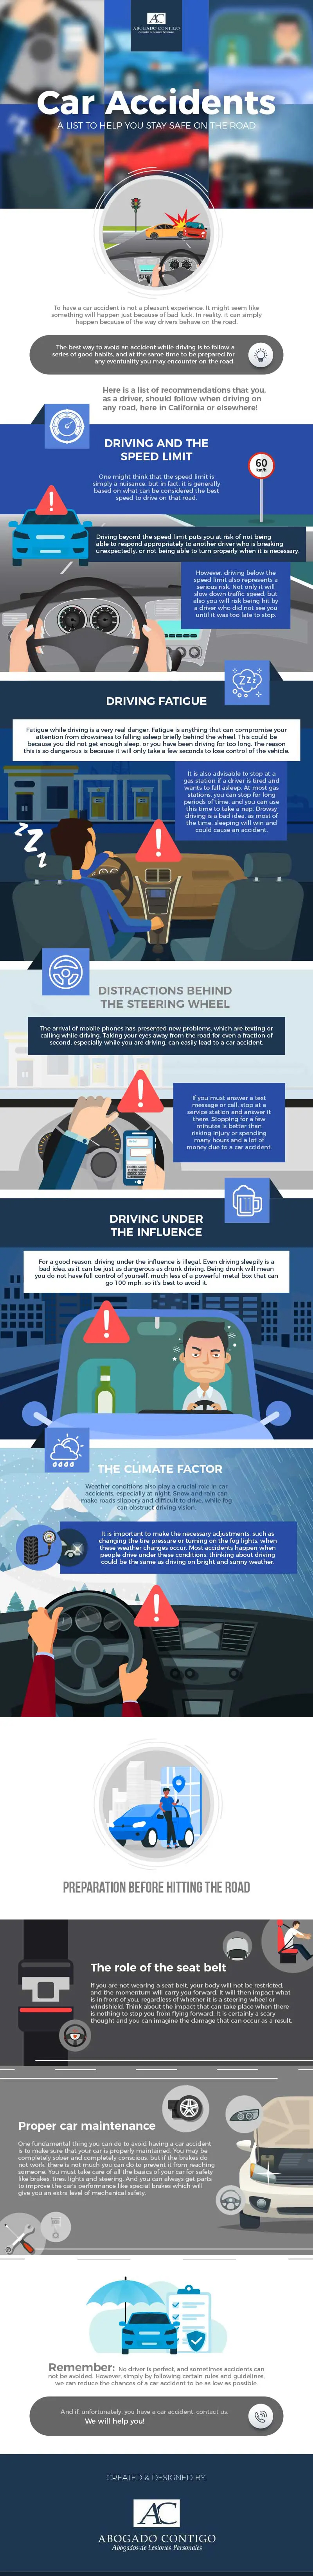 An Overview of Personal Injuries from Car Accidents - Infographic